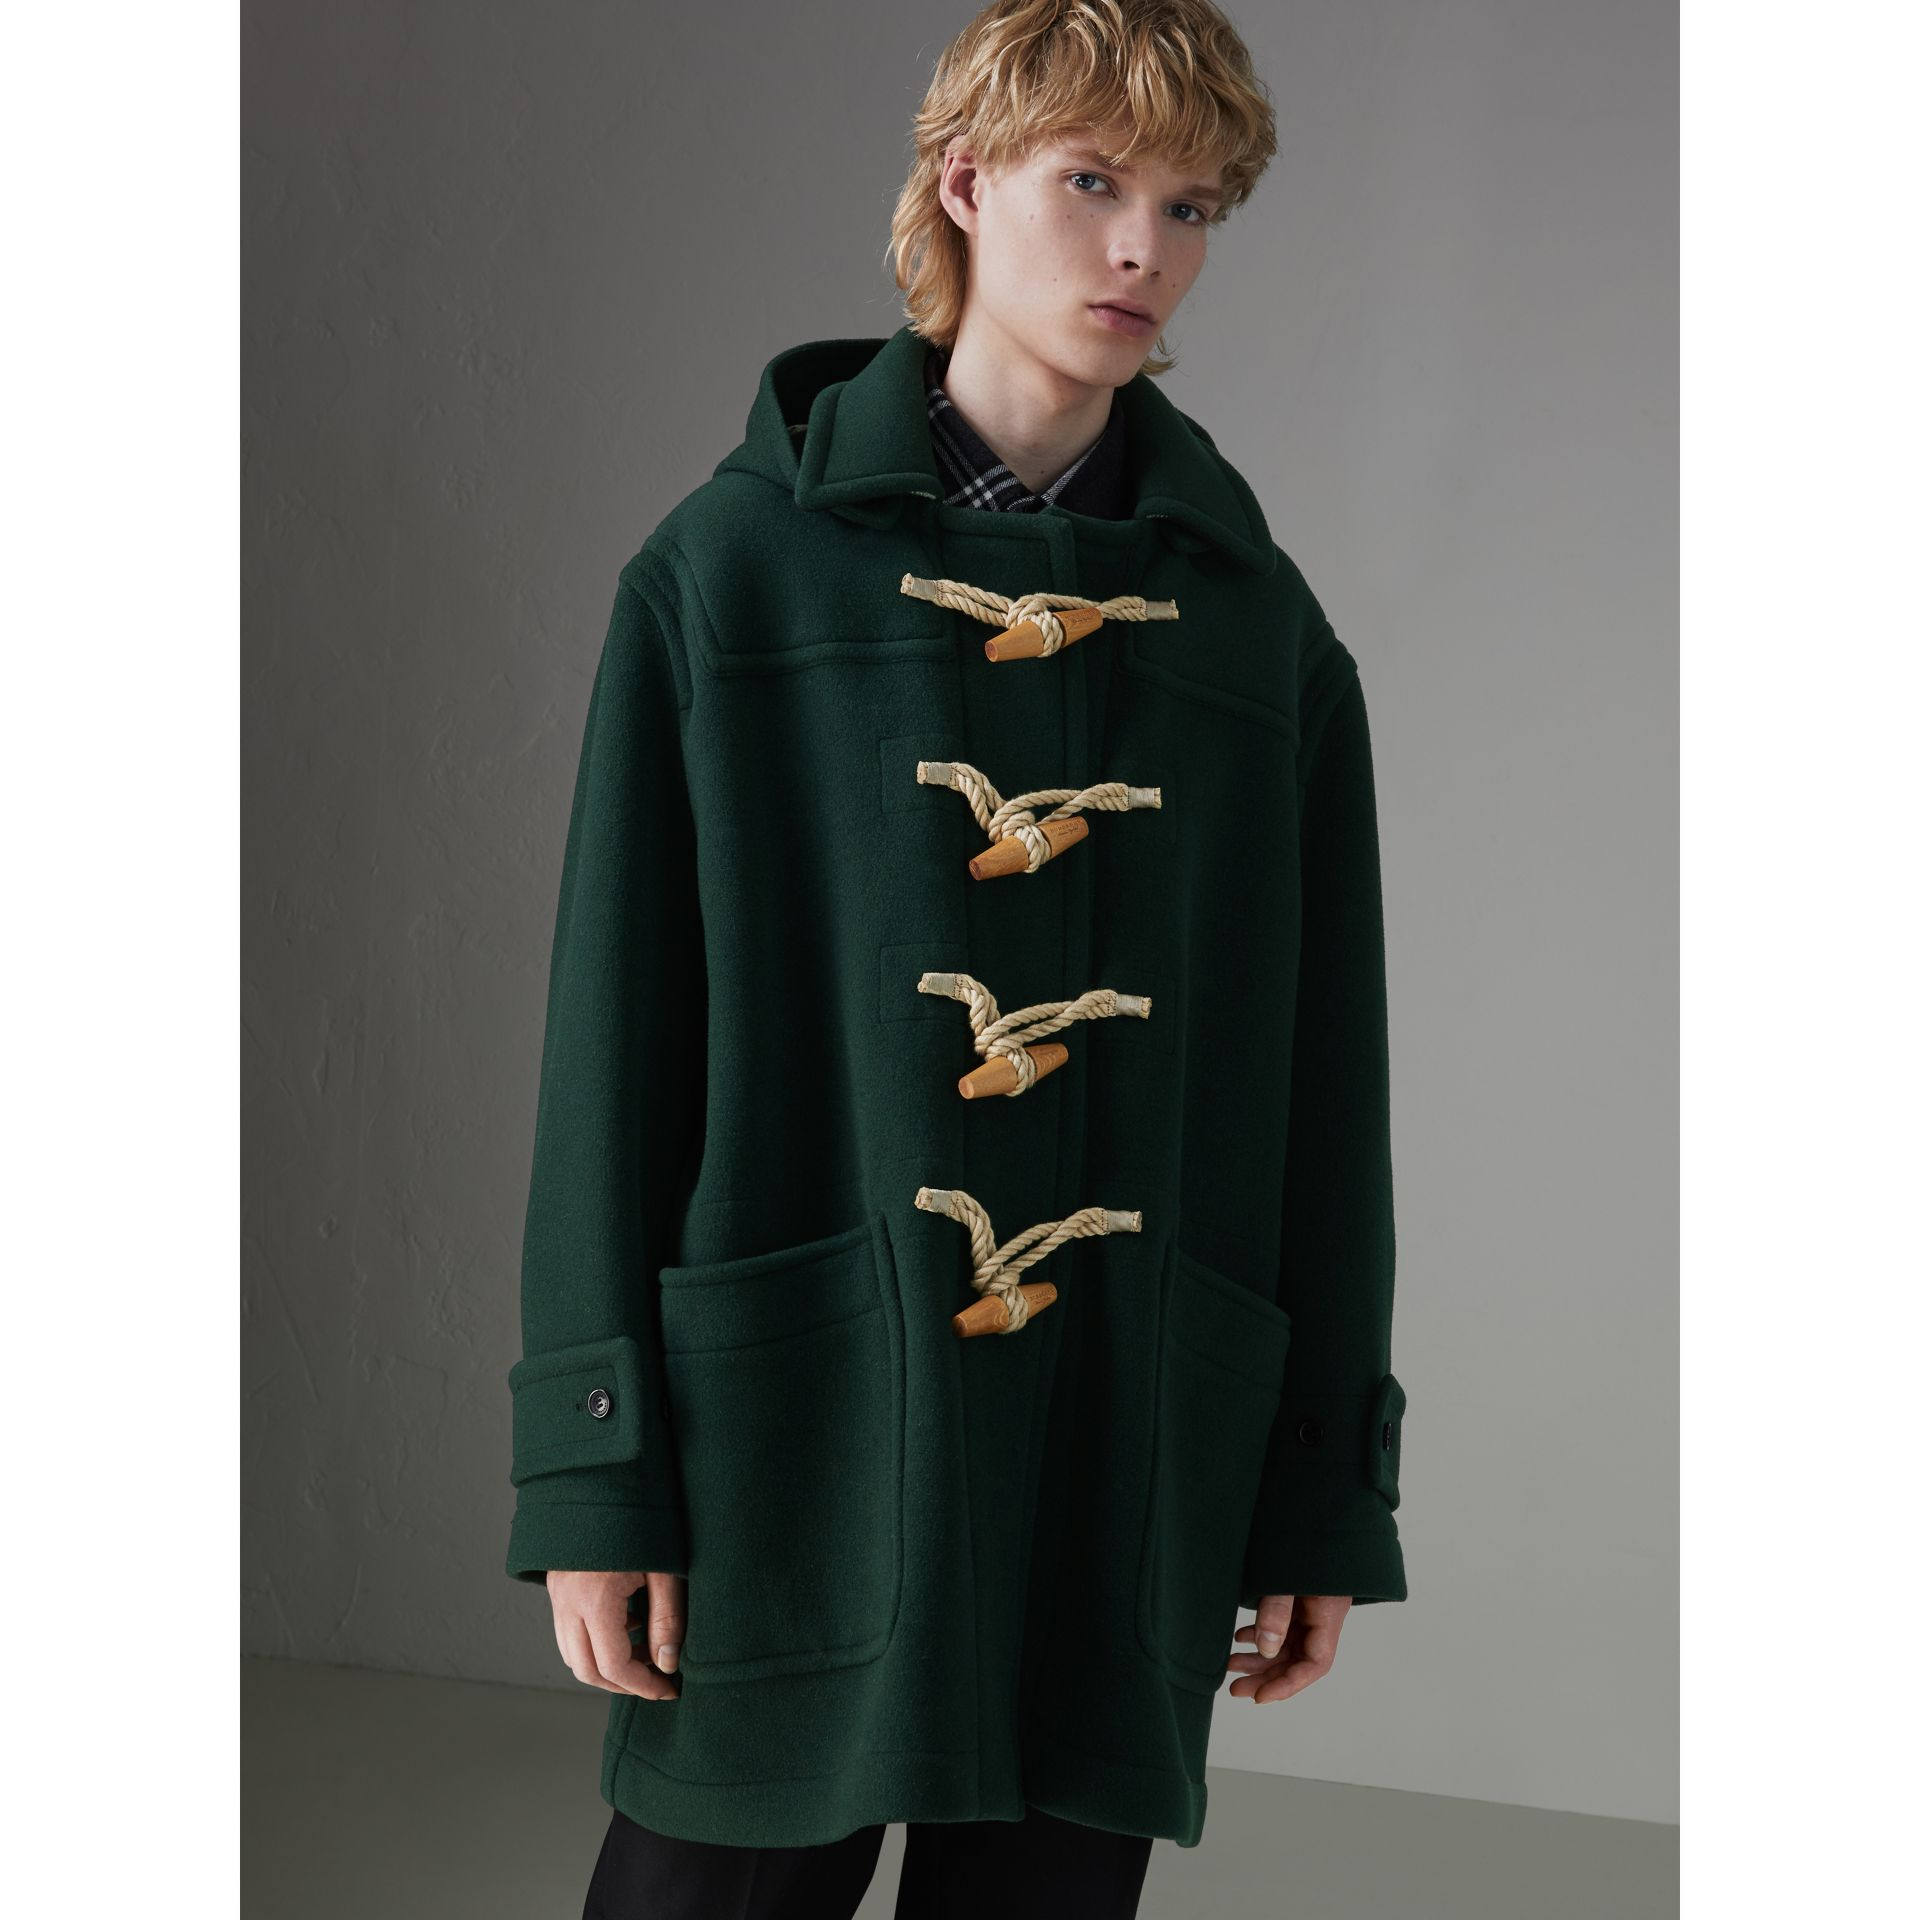 Gosha x Burberry Oversized Duffle Coat in Dark Forest Green | Burberry - gallery image 6